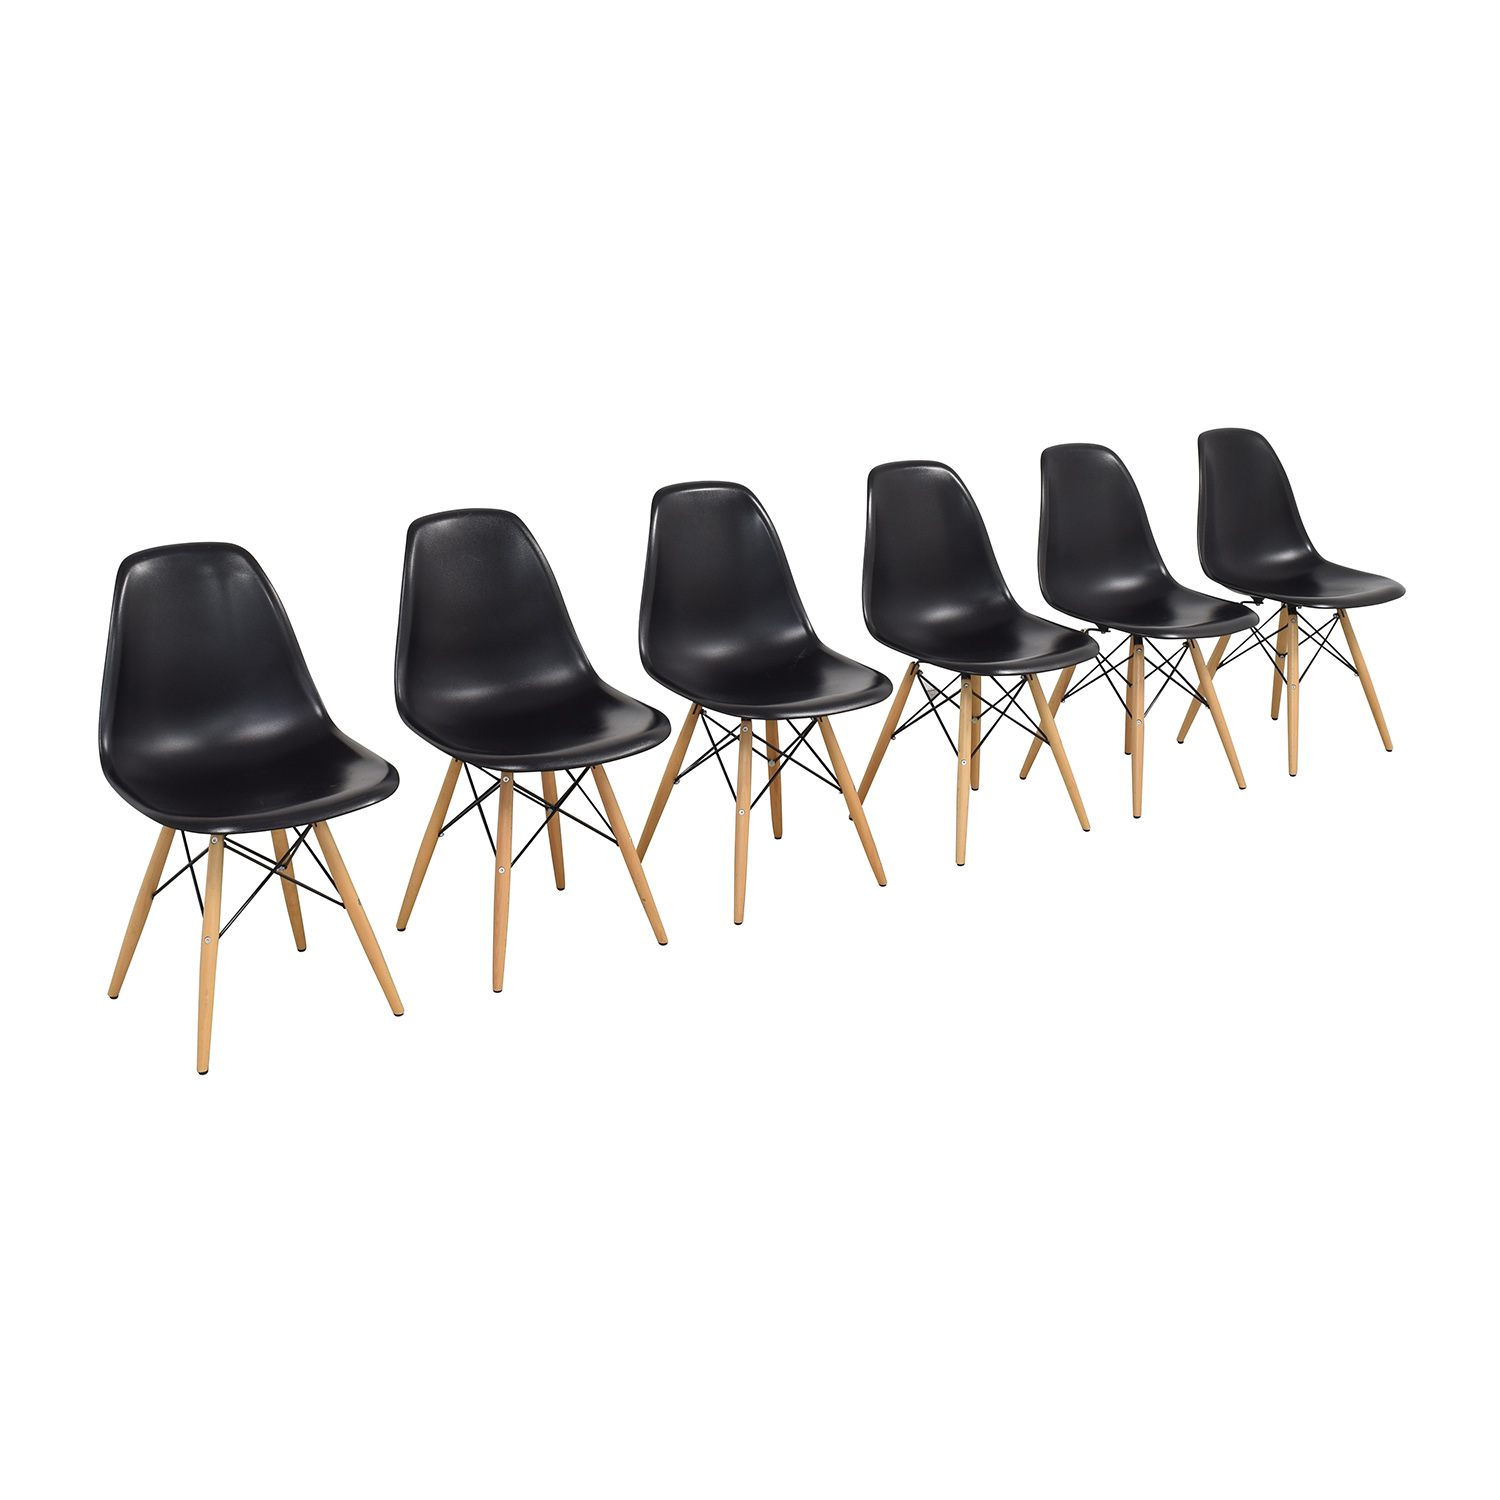 shop  Black Eames-Style Molded Plastic Dining Chairs with Wooden Legs online